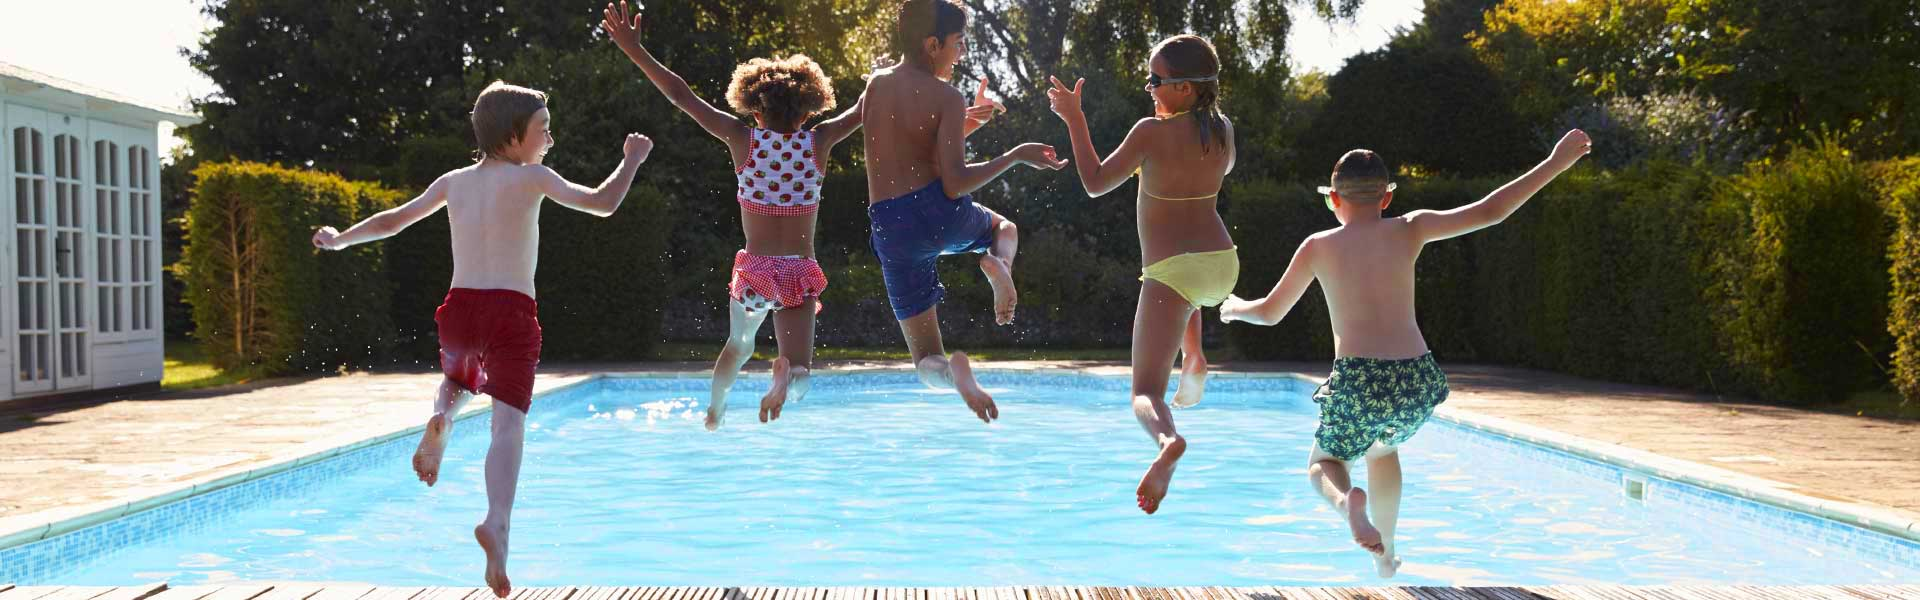 5 young kids jumping into a swimming pool